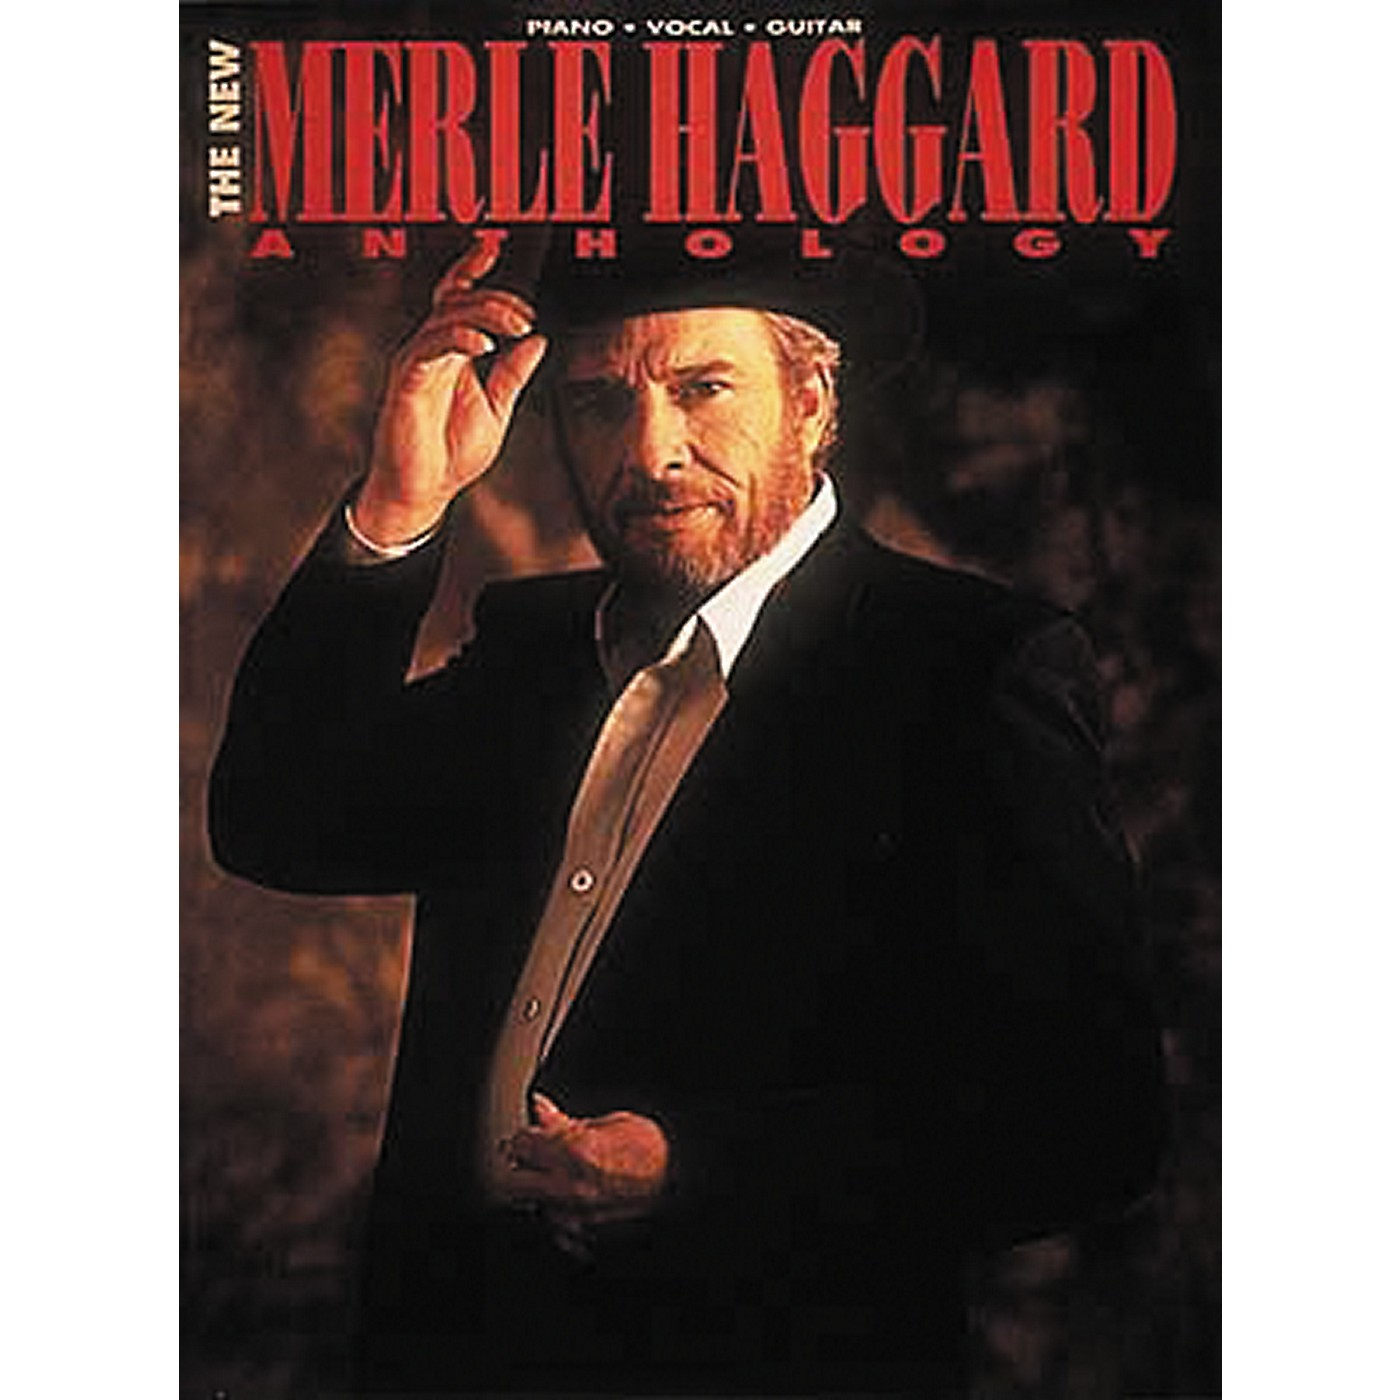 Hal Leonard The New Merle Haggard Anthology Piano, Vocal, Guitar Songbook thumbnail